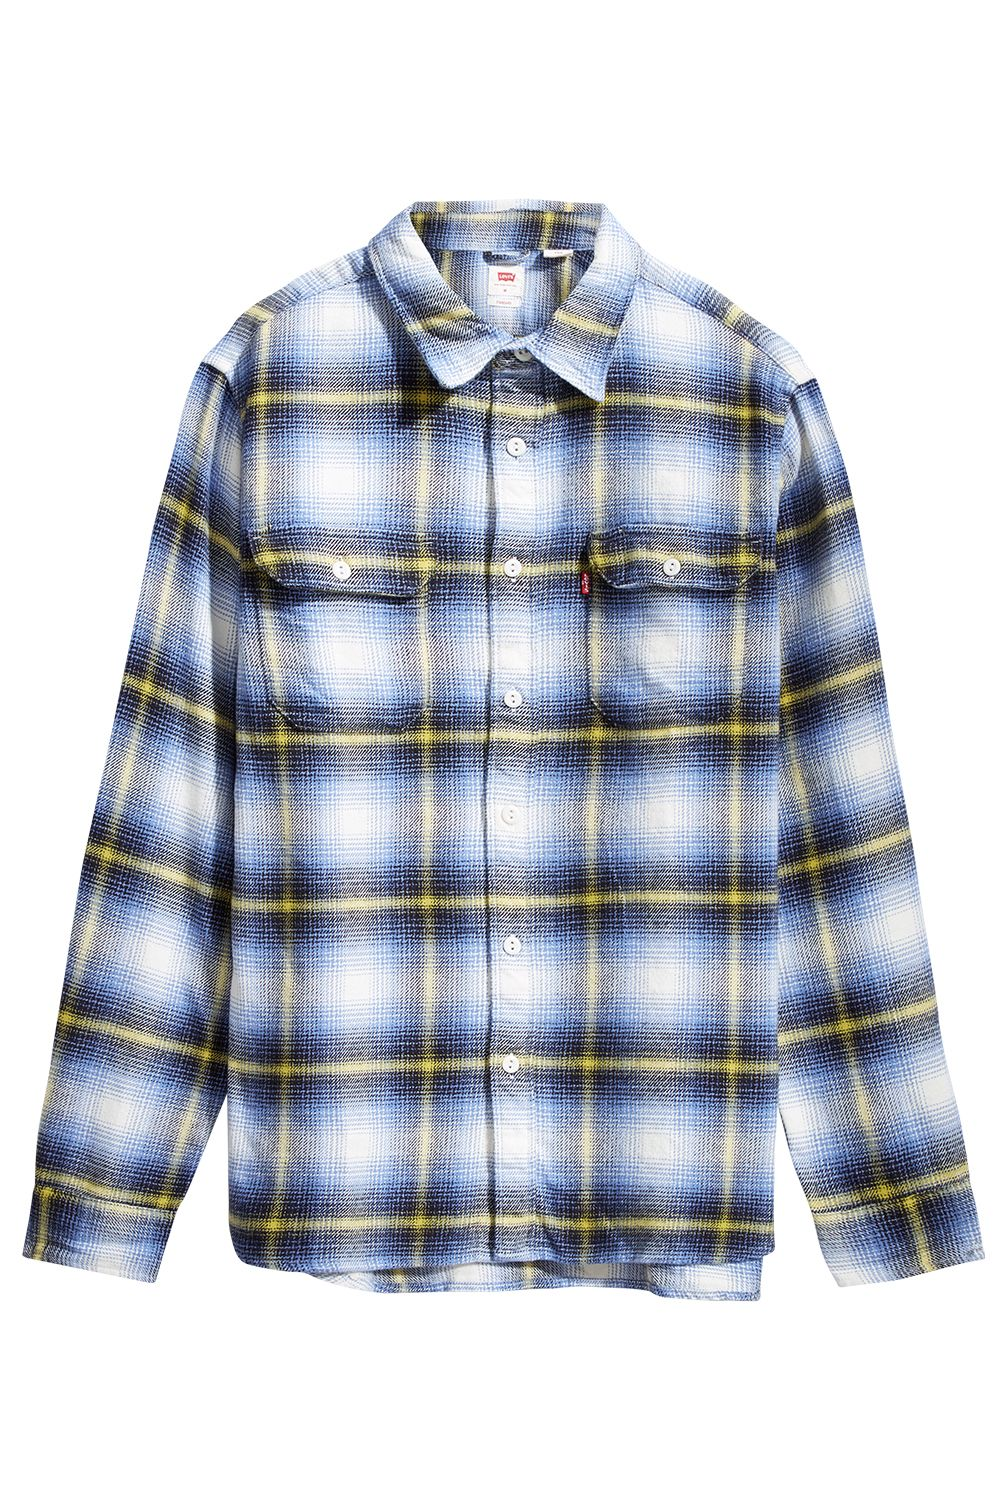 Levis Shirt JACKSON WORKER Wildomar Almond Milk